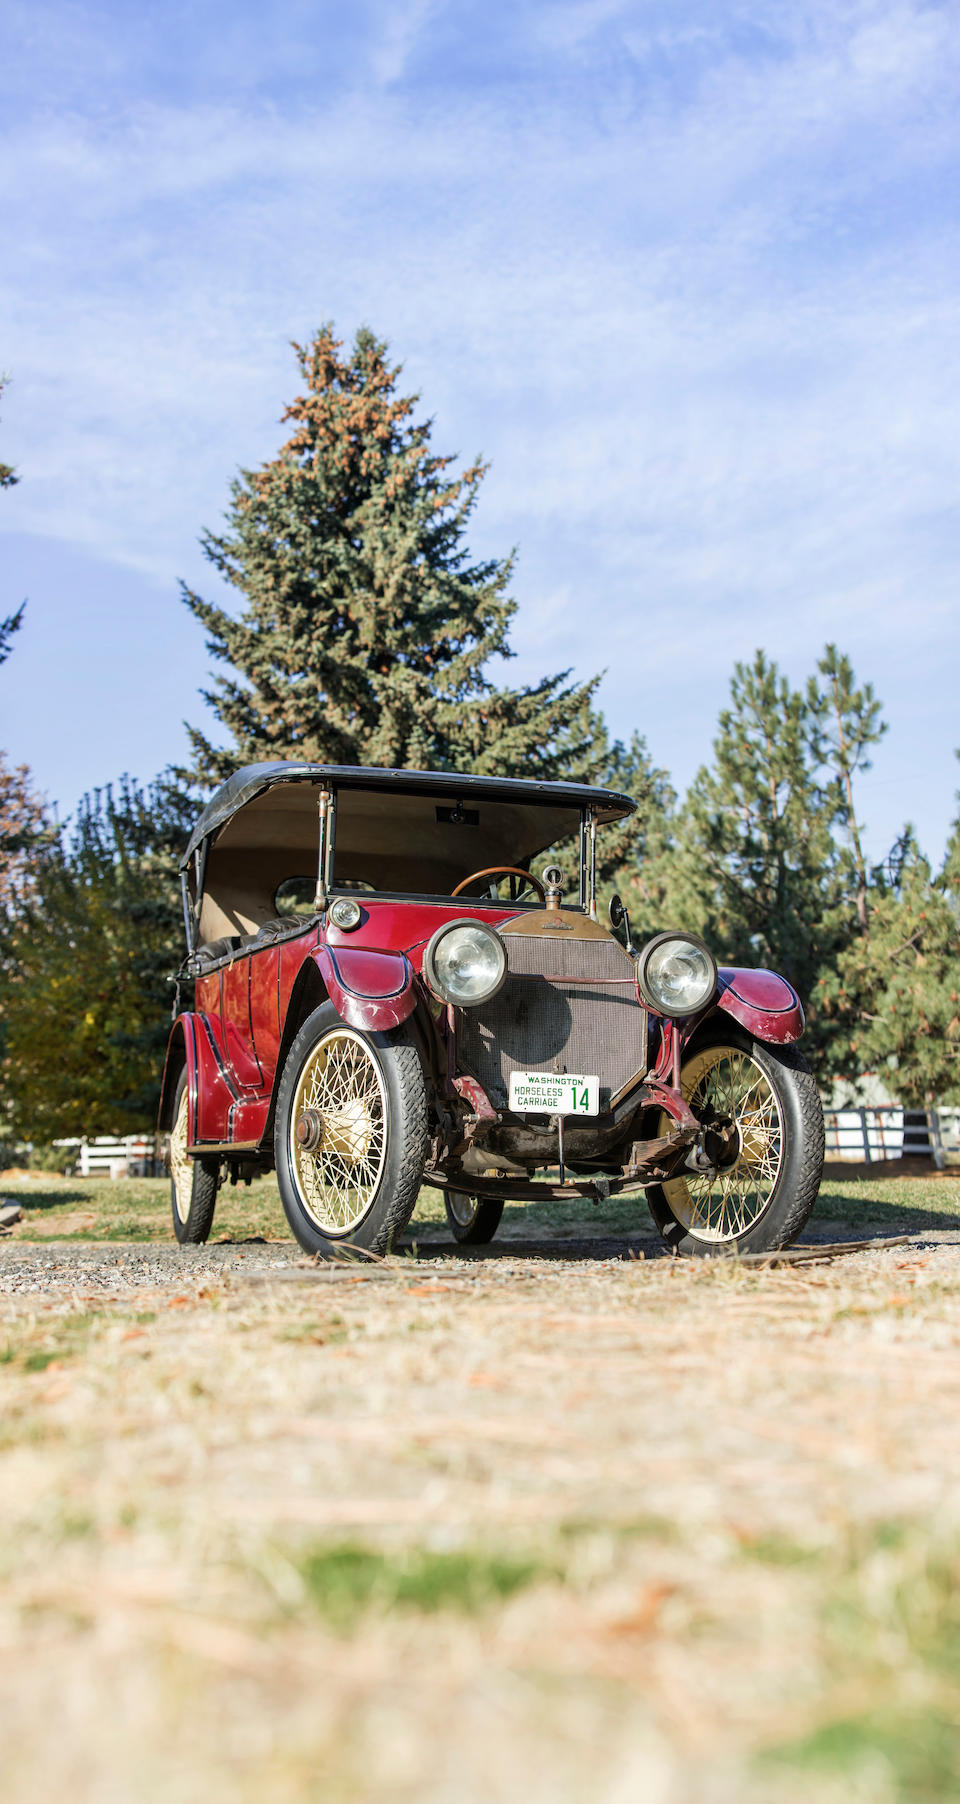 <b>1914 Stevens-Duryea Model DD Tourer</b><br />Chassis no. 32105<br />Engine no. 217-DD